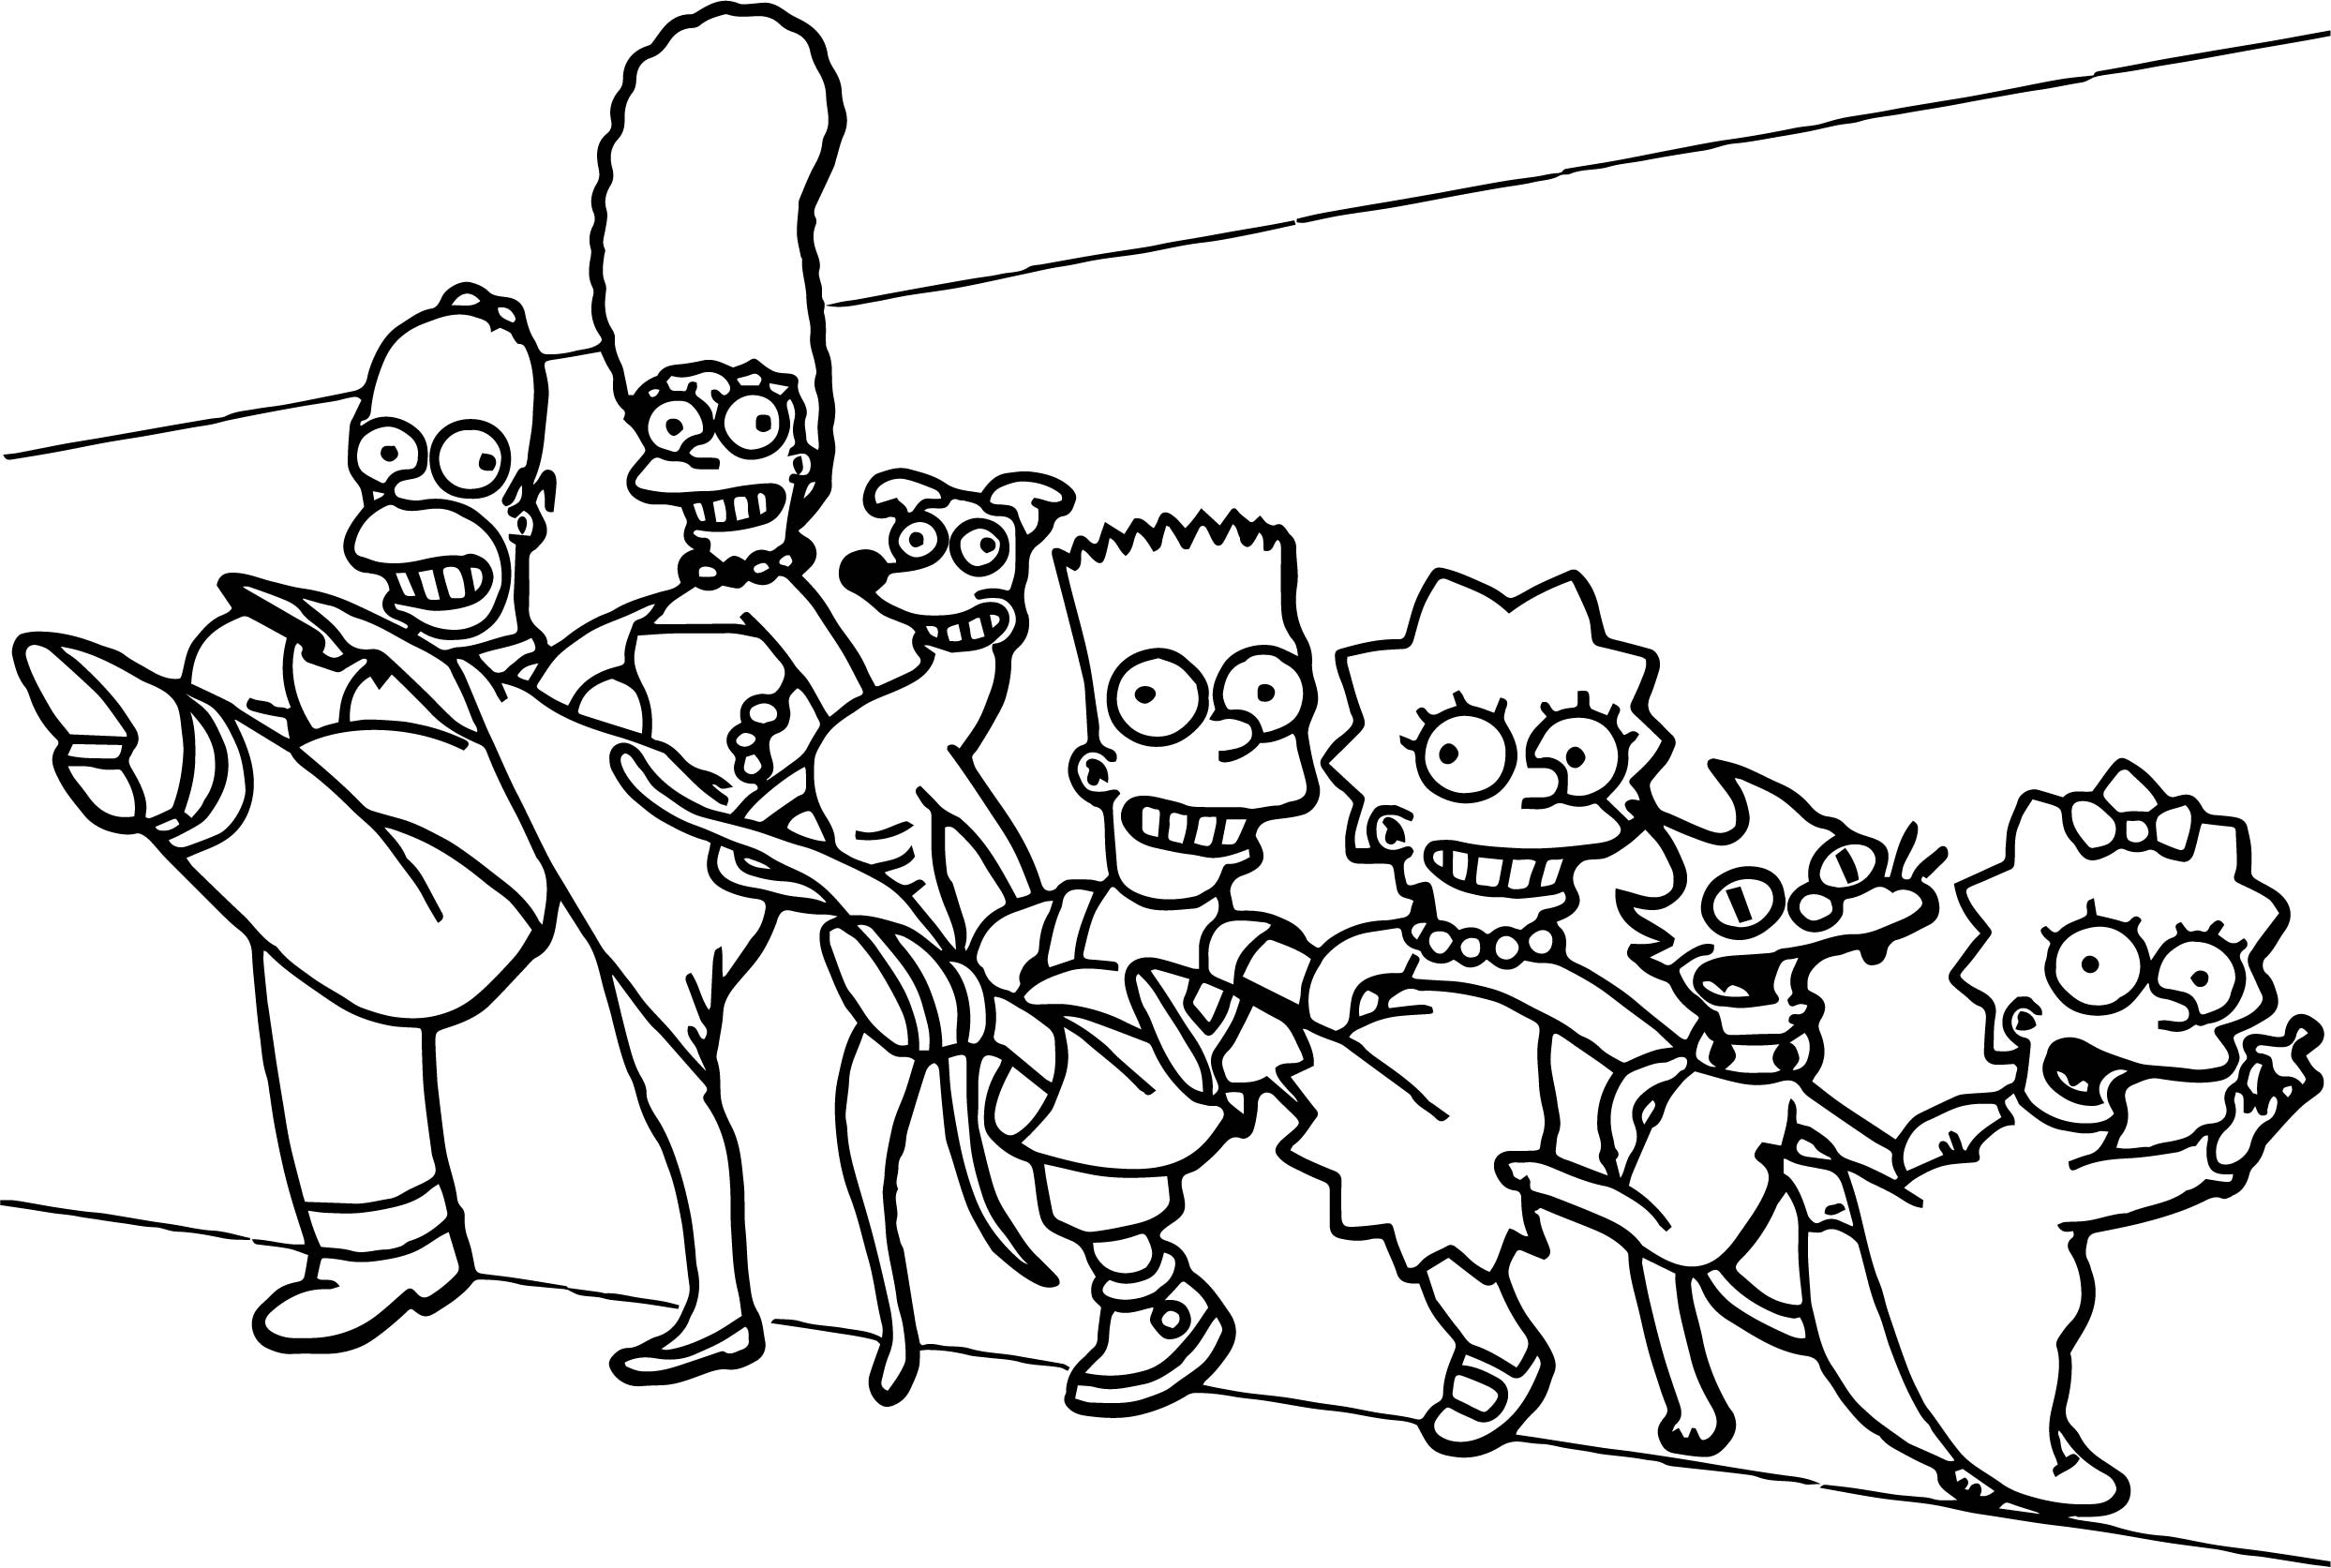 simpsons family coloring pages contegri com